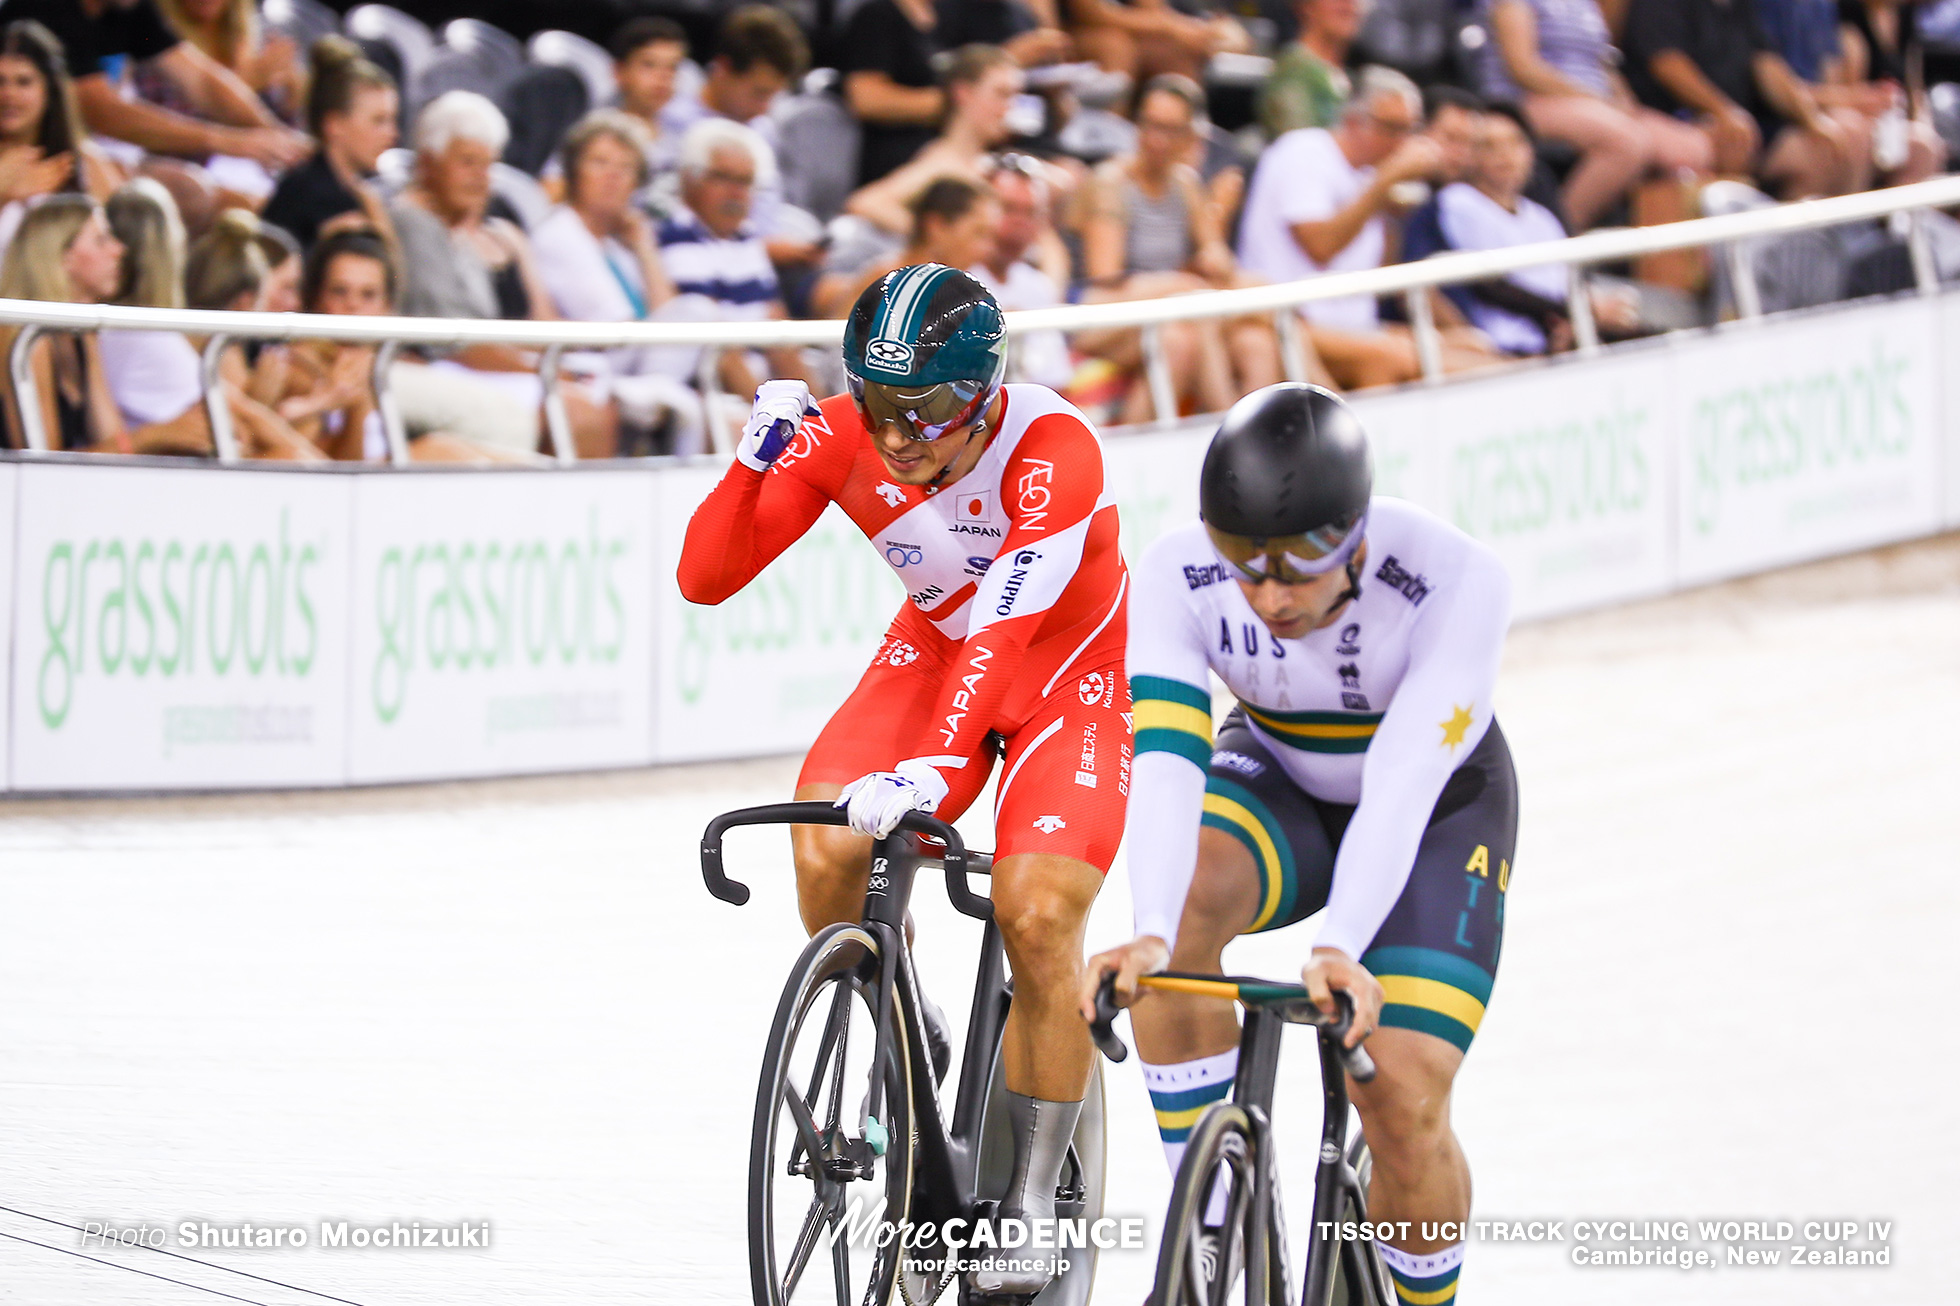 Final / Men's Sprint / TISSOT UCI TRACK CYCLING WORLD CUP IV, Cambridge, New Zealand